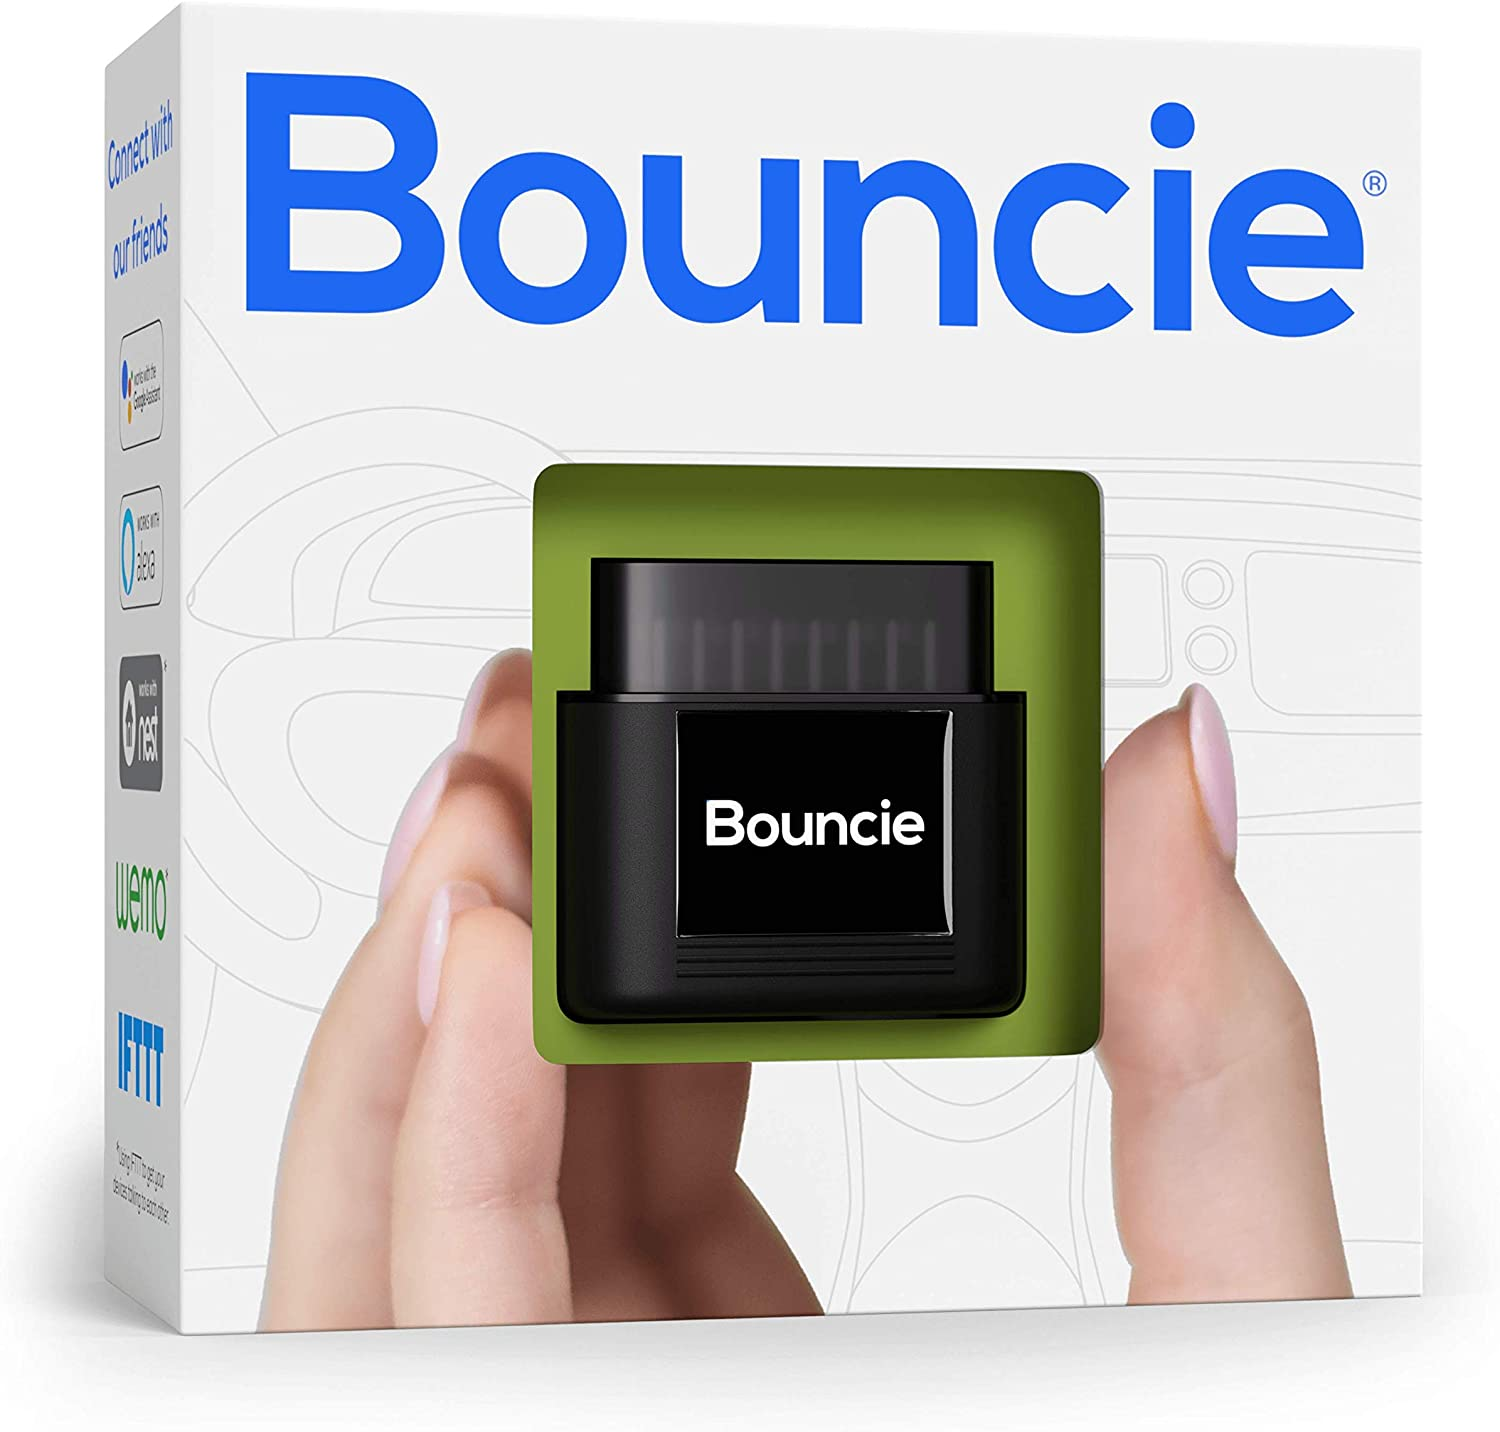 bouncie - Connected Car - 15 Second Updates - Location Tracking, Driving Habits, Alerts, Geo-Fence, Diagnostics - OBD2 Adapter - Family or Fleets - ...